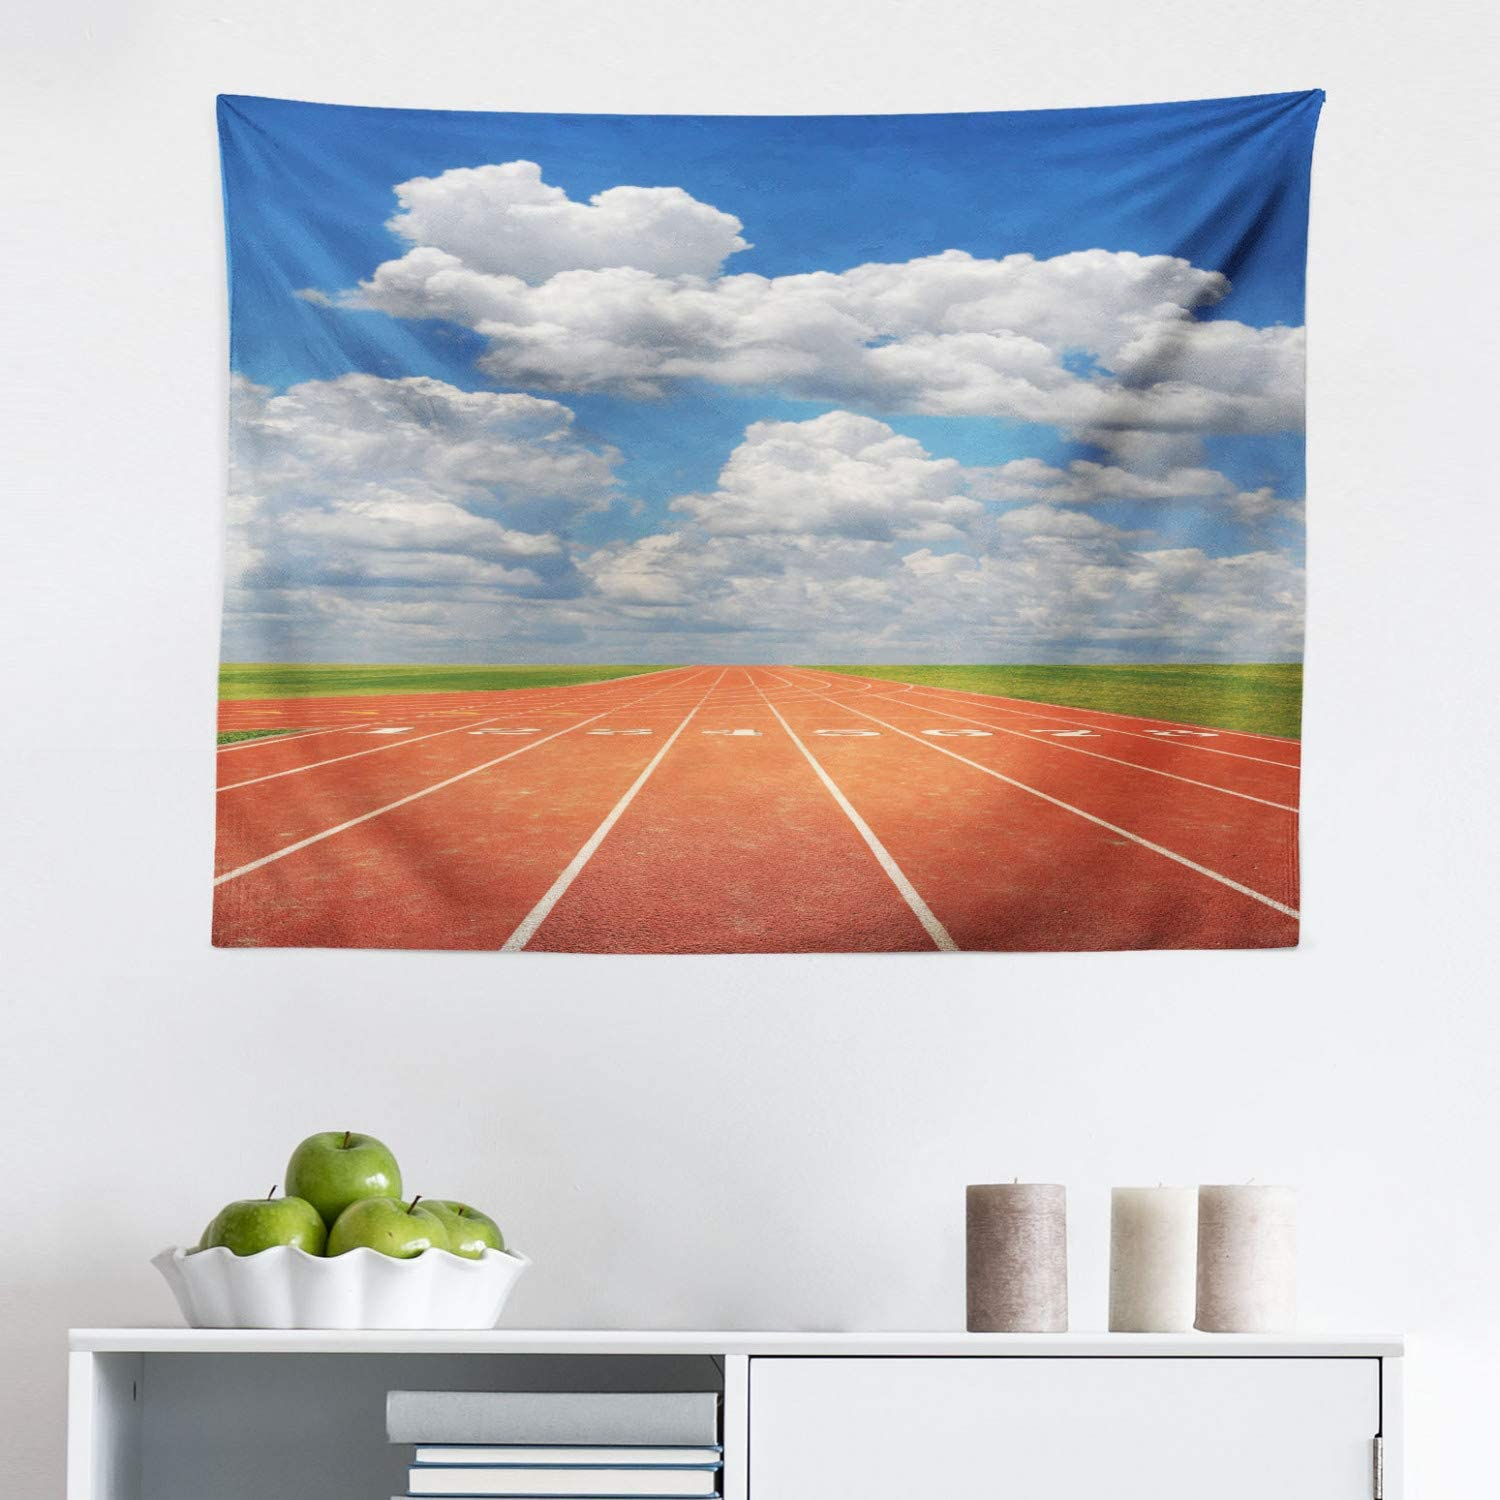 """Lunarable Olympics Tapestry, Sports Competition Running Track on a Sunny Day Lawn Grass Field Cloudy, Fabric Wall Hanging Decor for Bedroom Living Room Dorm, 28"""" X 23"""", Sky Blue"""